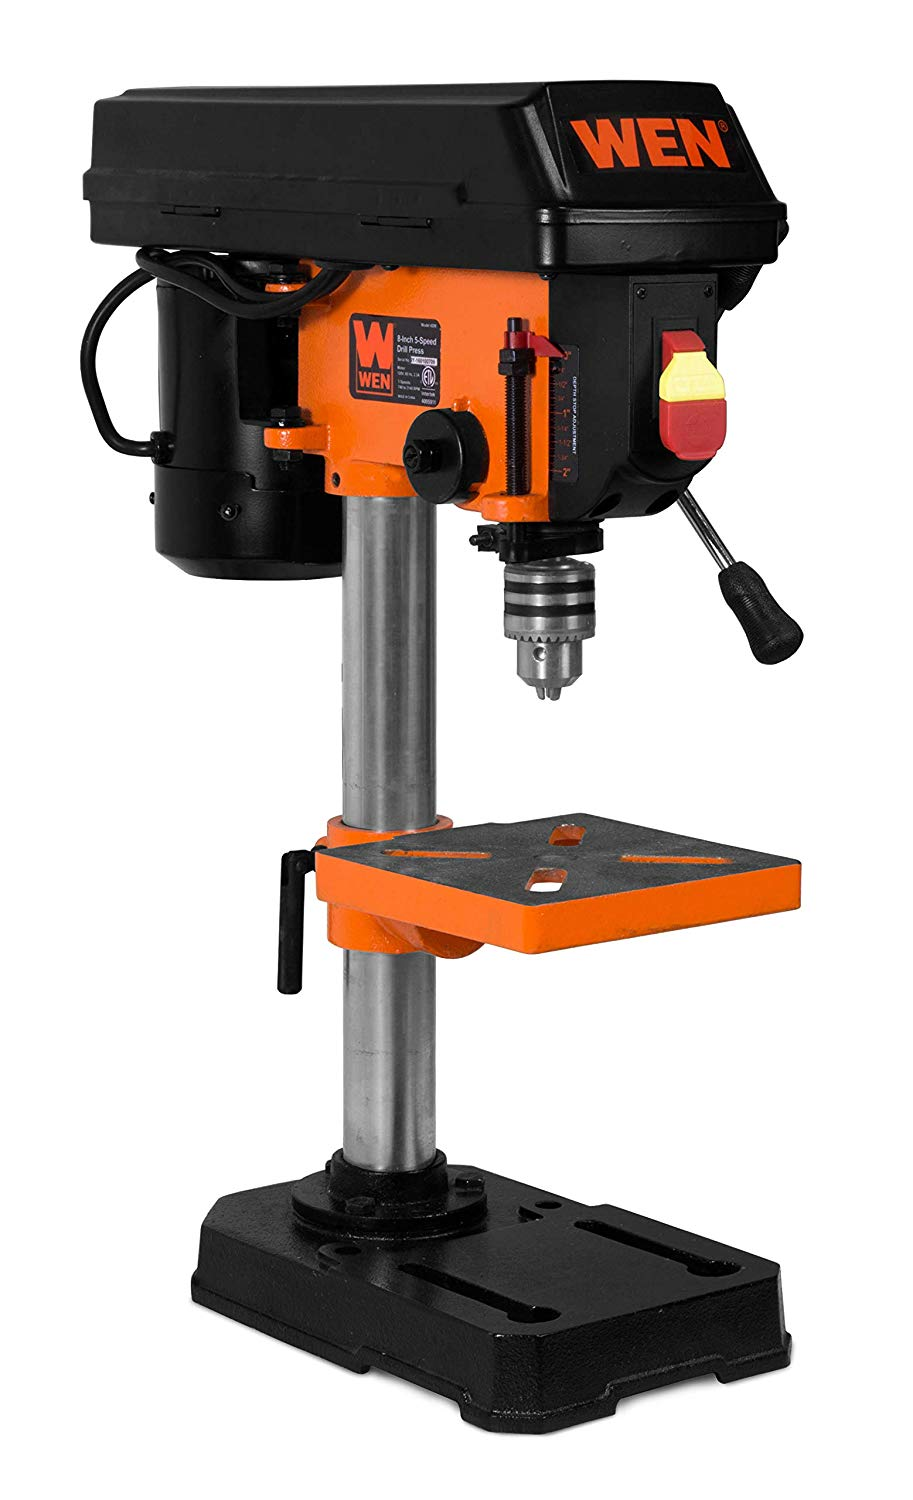 WEN Speed Drill Press